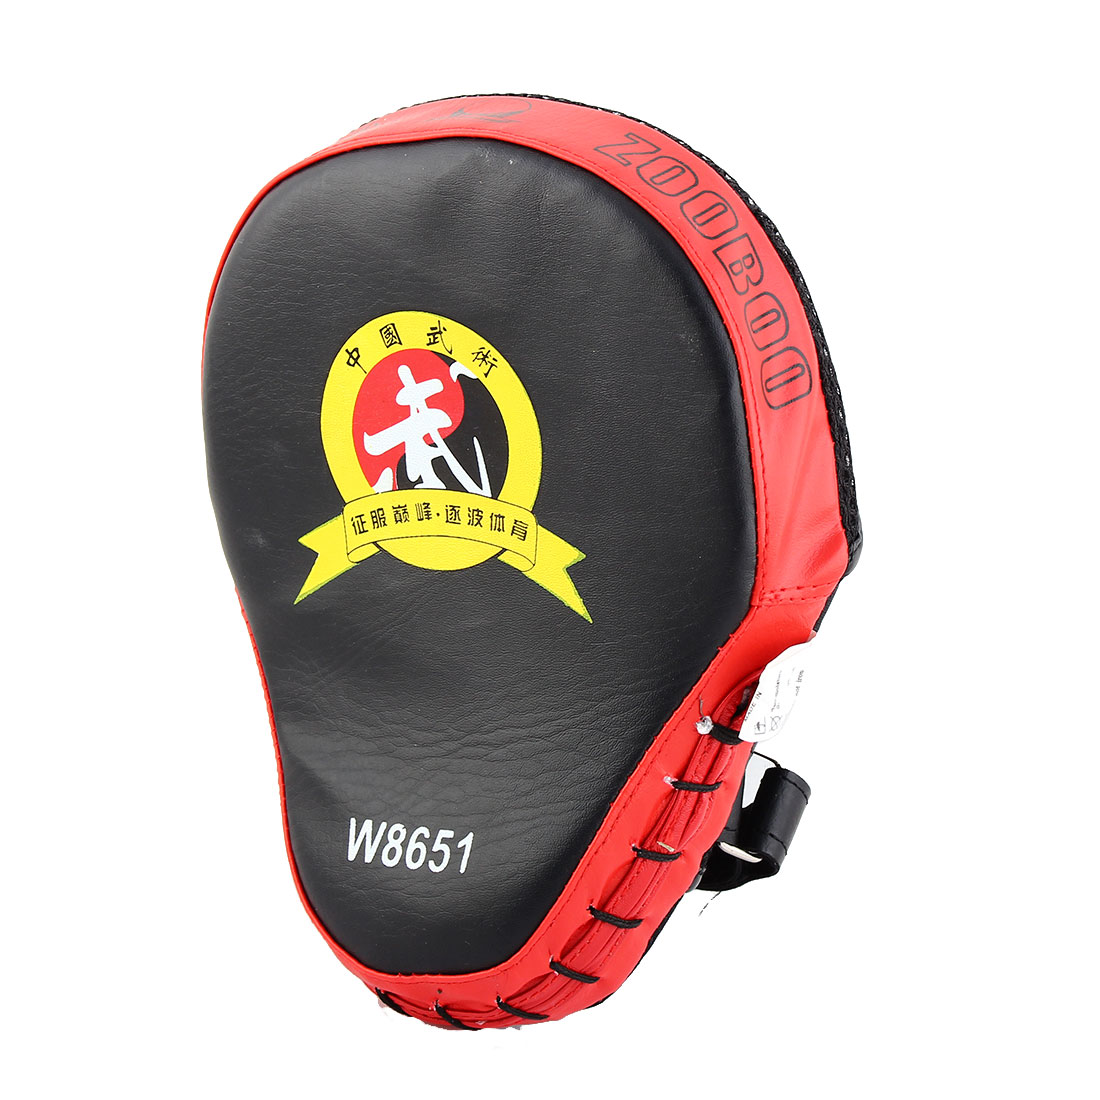 Karate Thai Kick MMA Boxing Punching Mitt Target Focus Pads Strike Shield Red